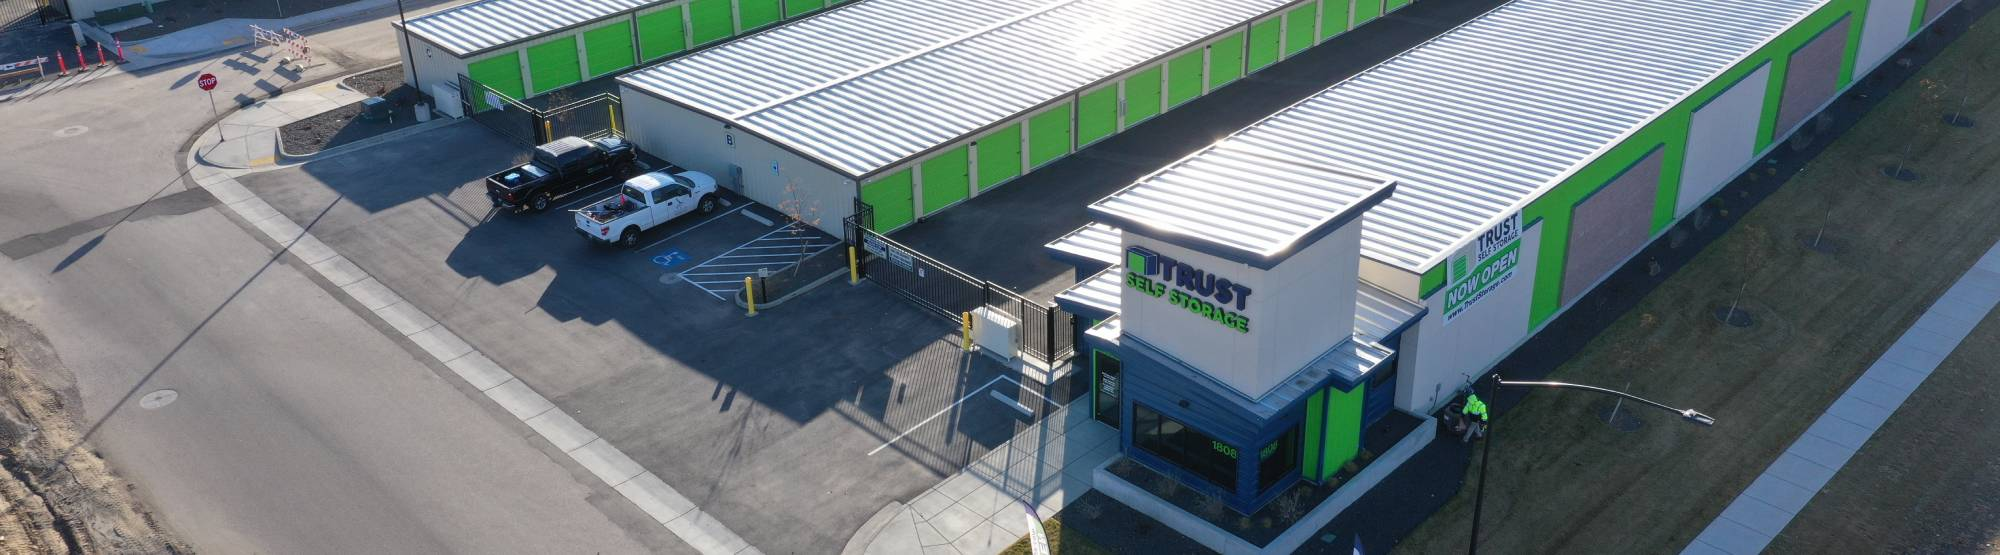 Sky view of self storage facilities in Boise, ID